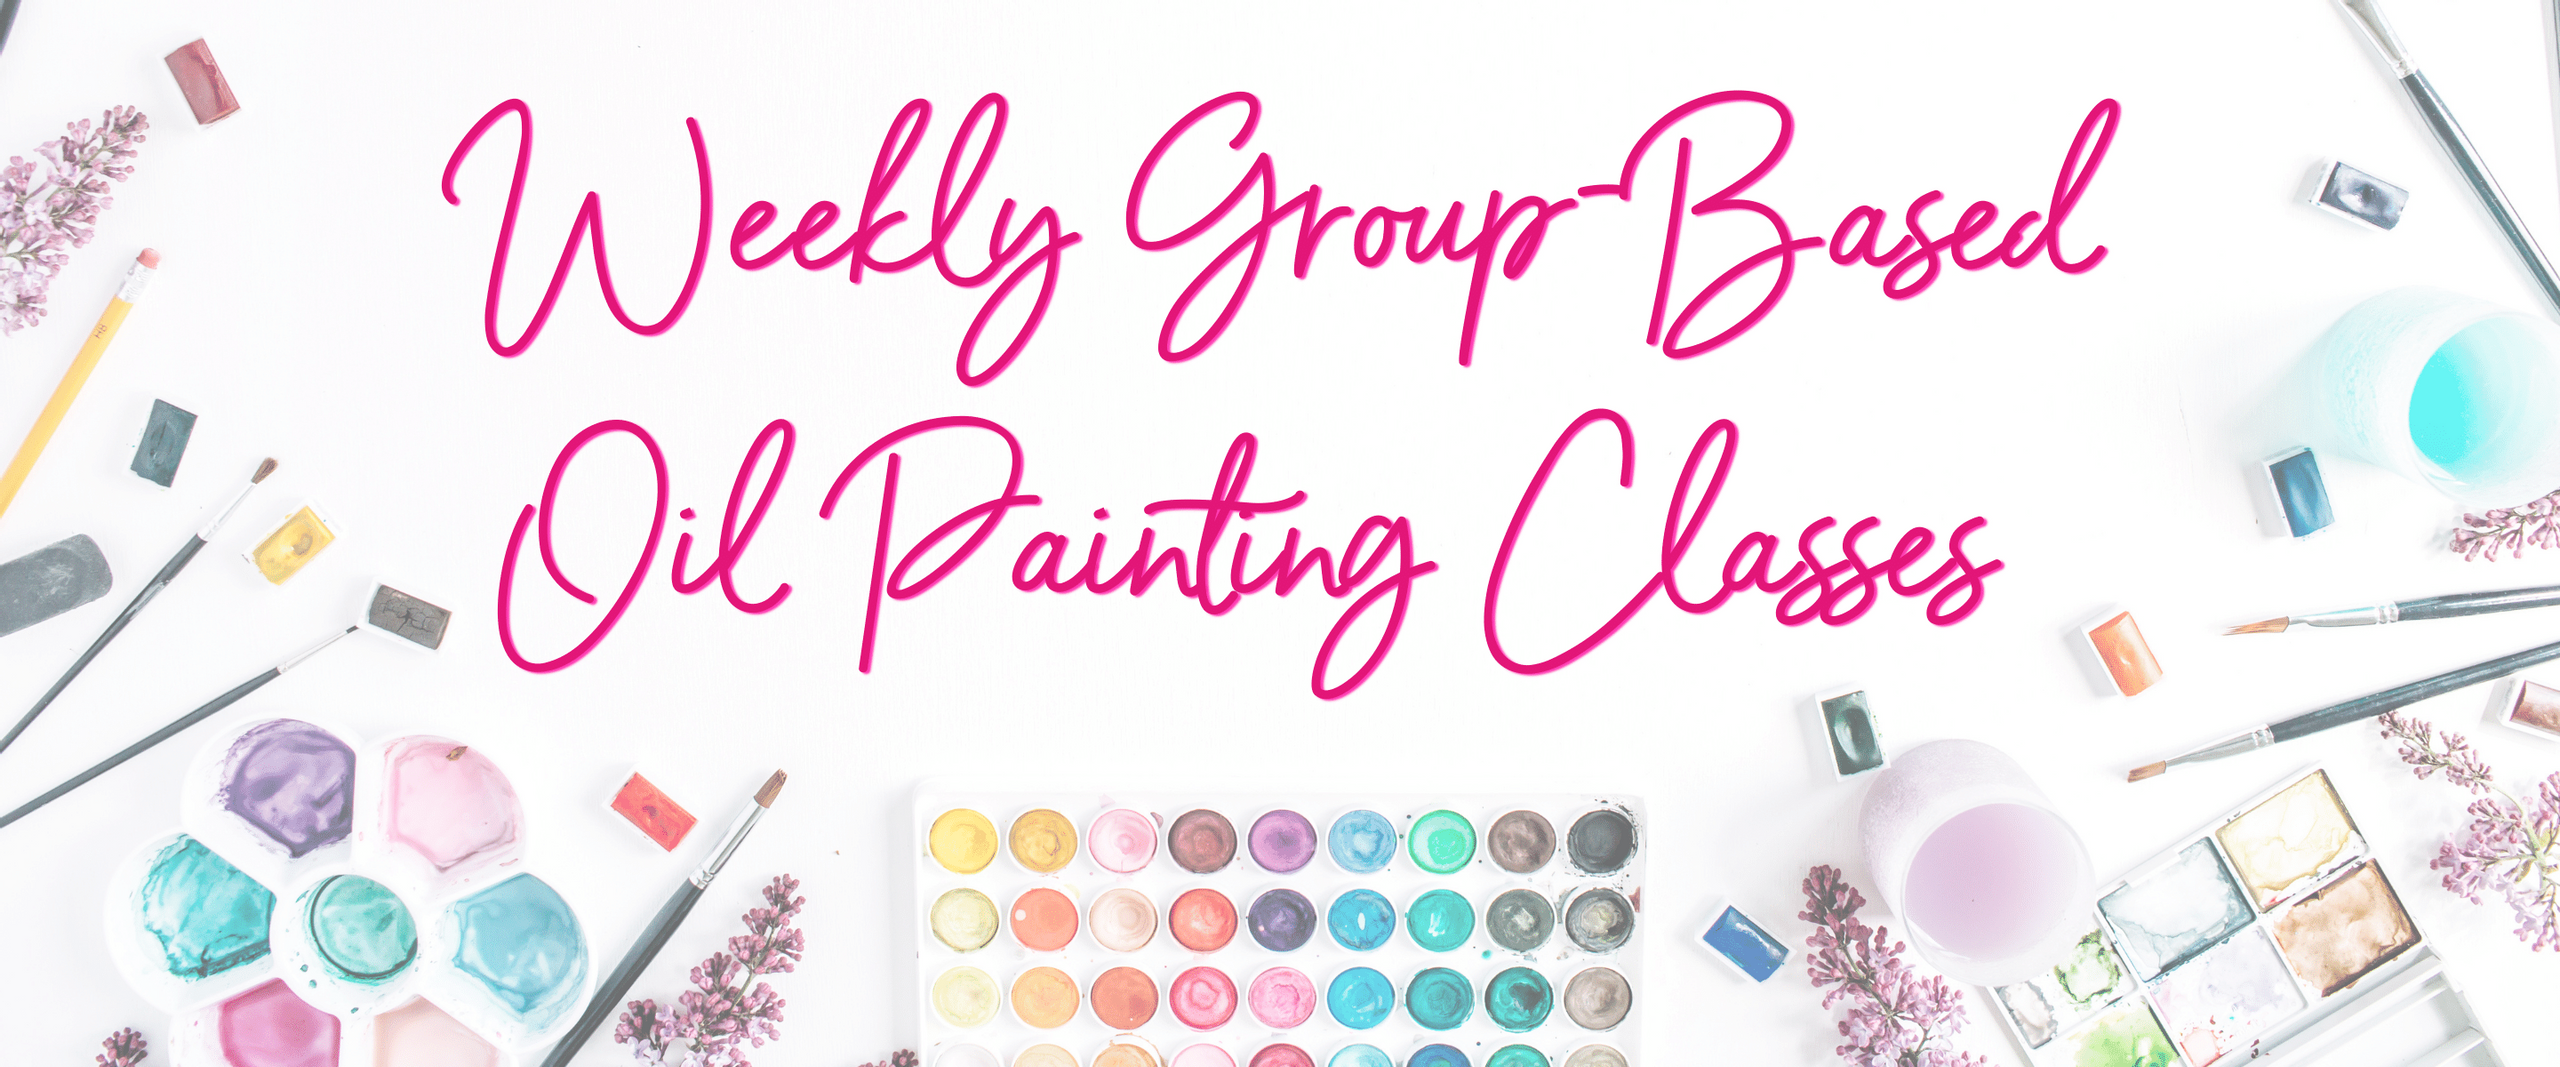 Instructor Lead Oil Painting Classes